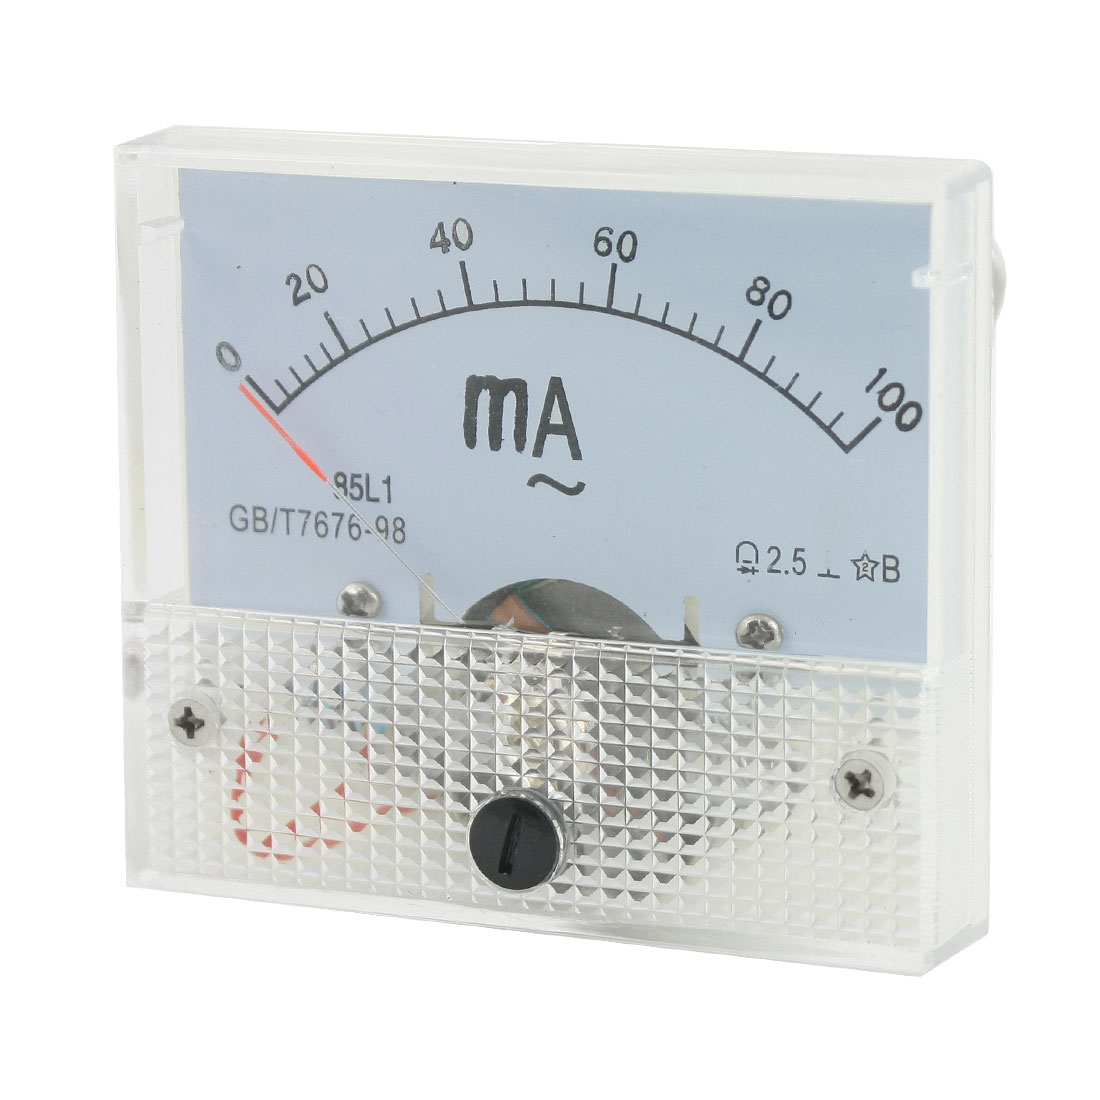 AC 0-100mA Measuring Range Current Testing Panel Analog Ammeter Amperemeter Class 2.5 for School Lab